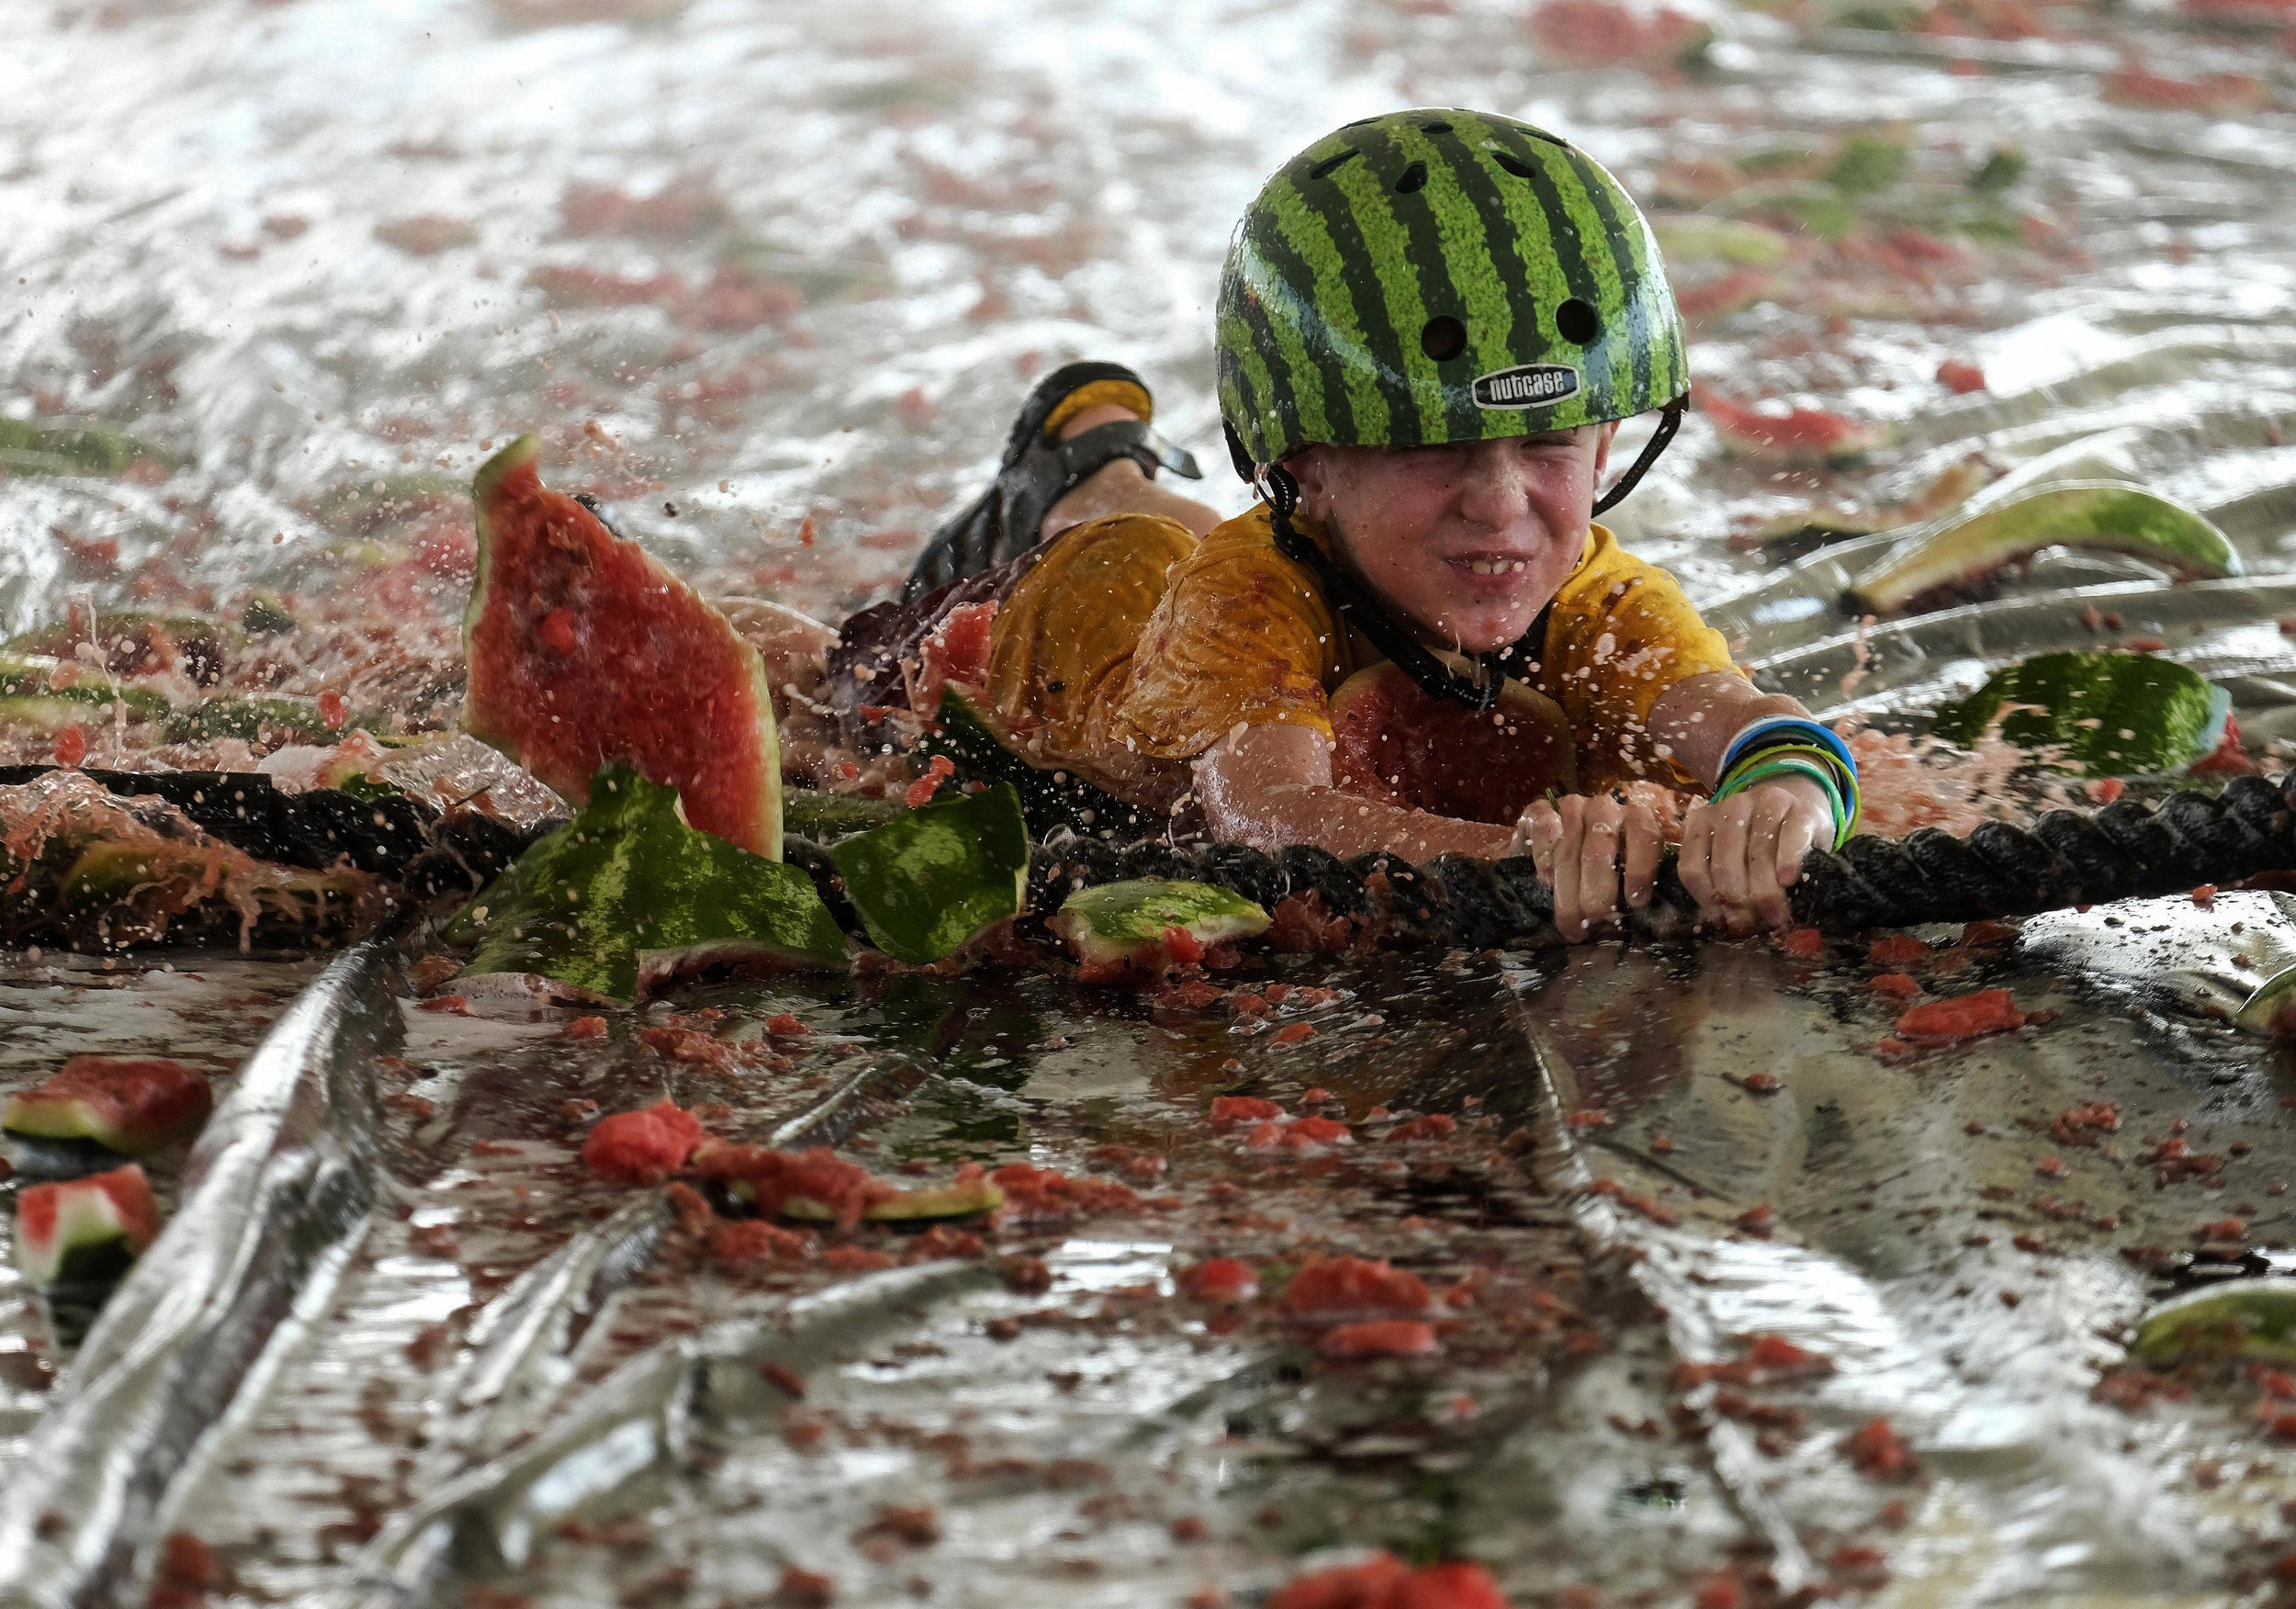 A boy plays melon skiing at the 56th Annual California Watermelon Festival in Los Angeles, Saturday, July 28, 2018.